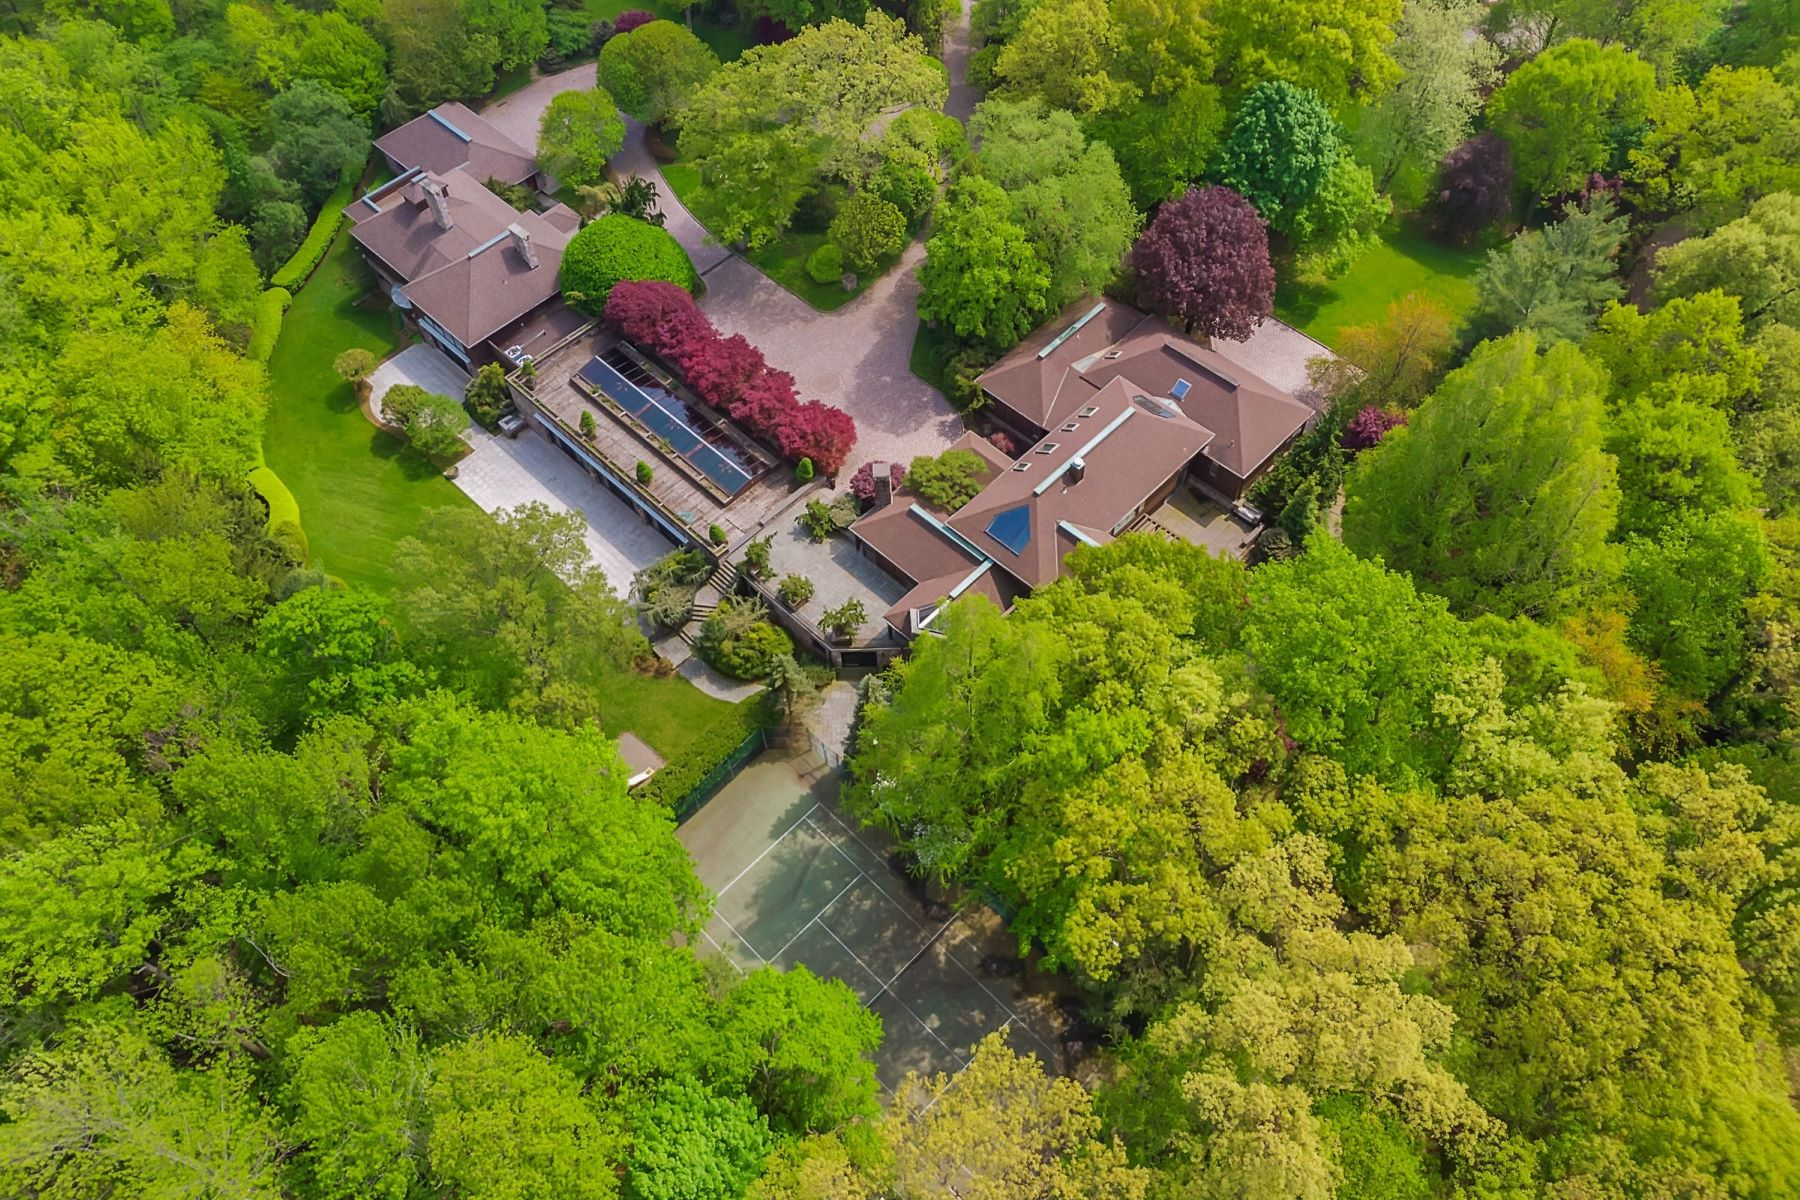 Single Family Home for Sale at 4 Acre Estate with Guest Home 27 Timberline Dr, Alpine, New Jersey 07620 United States